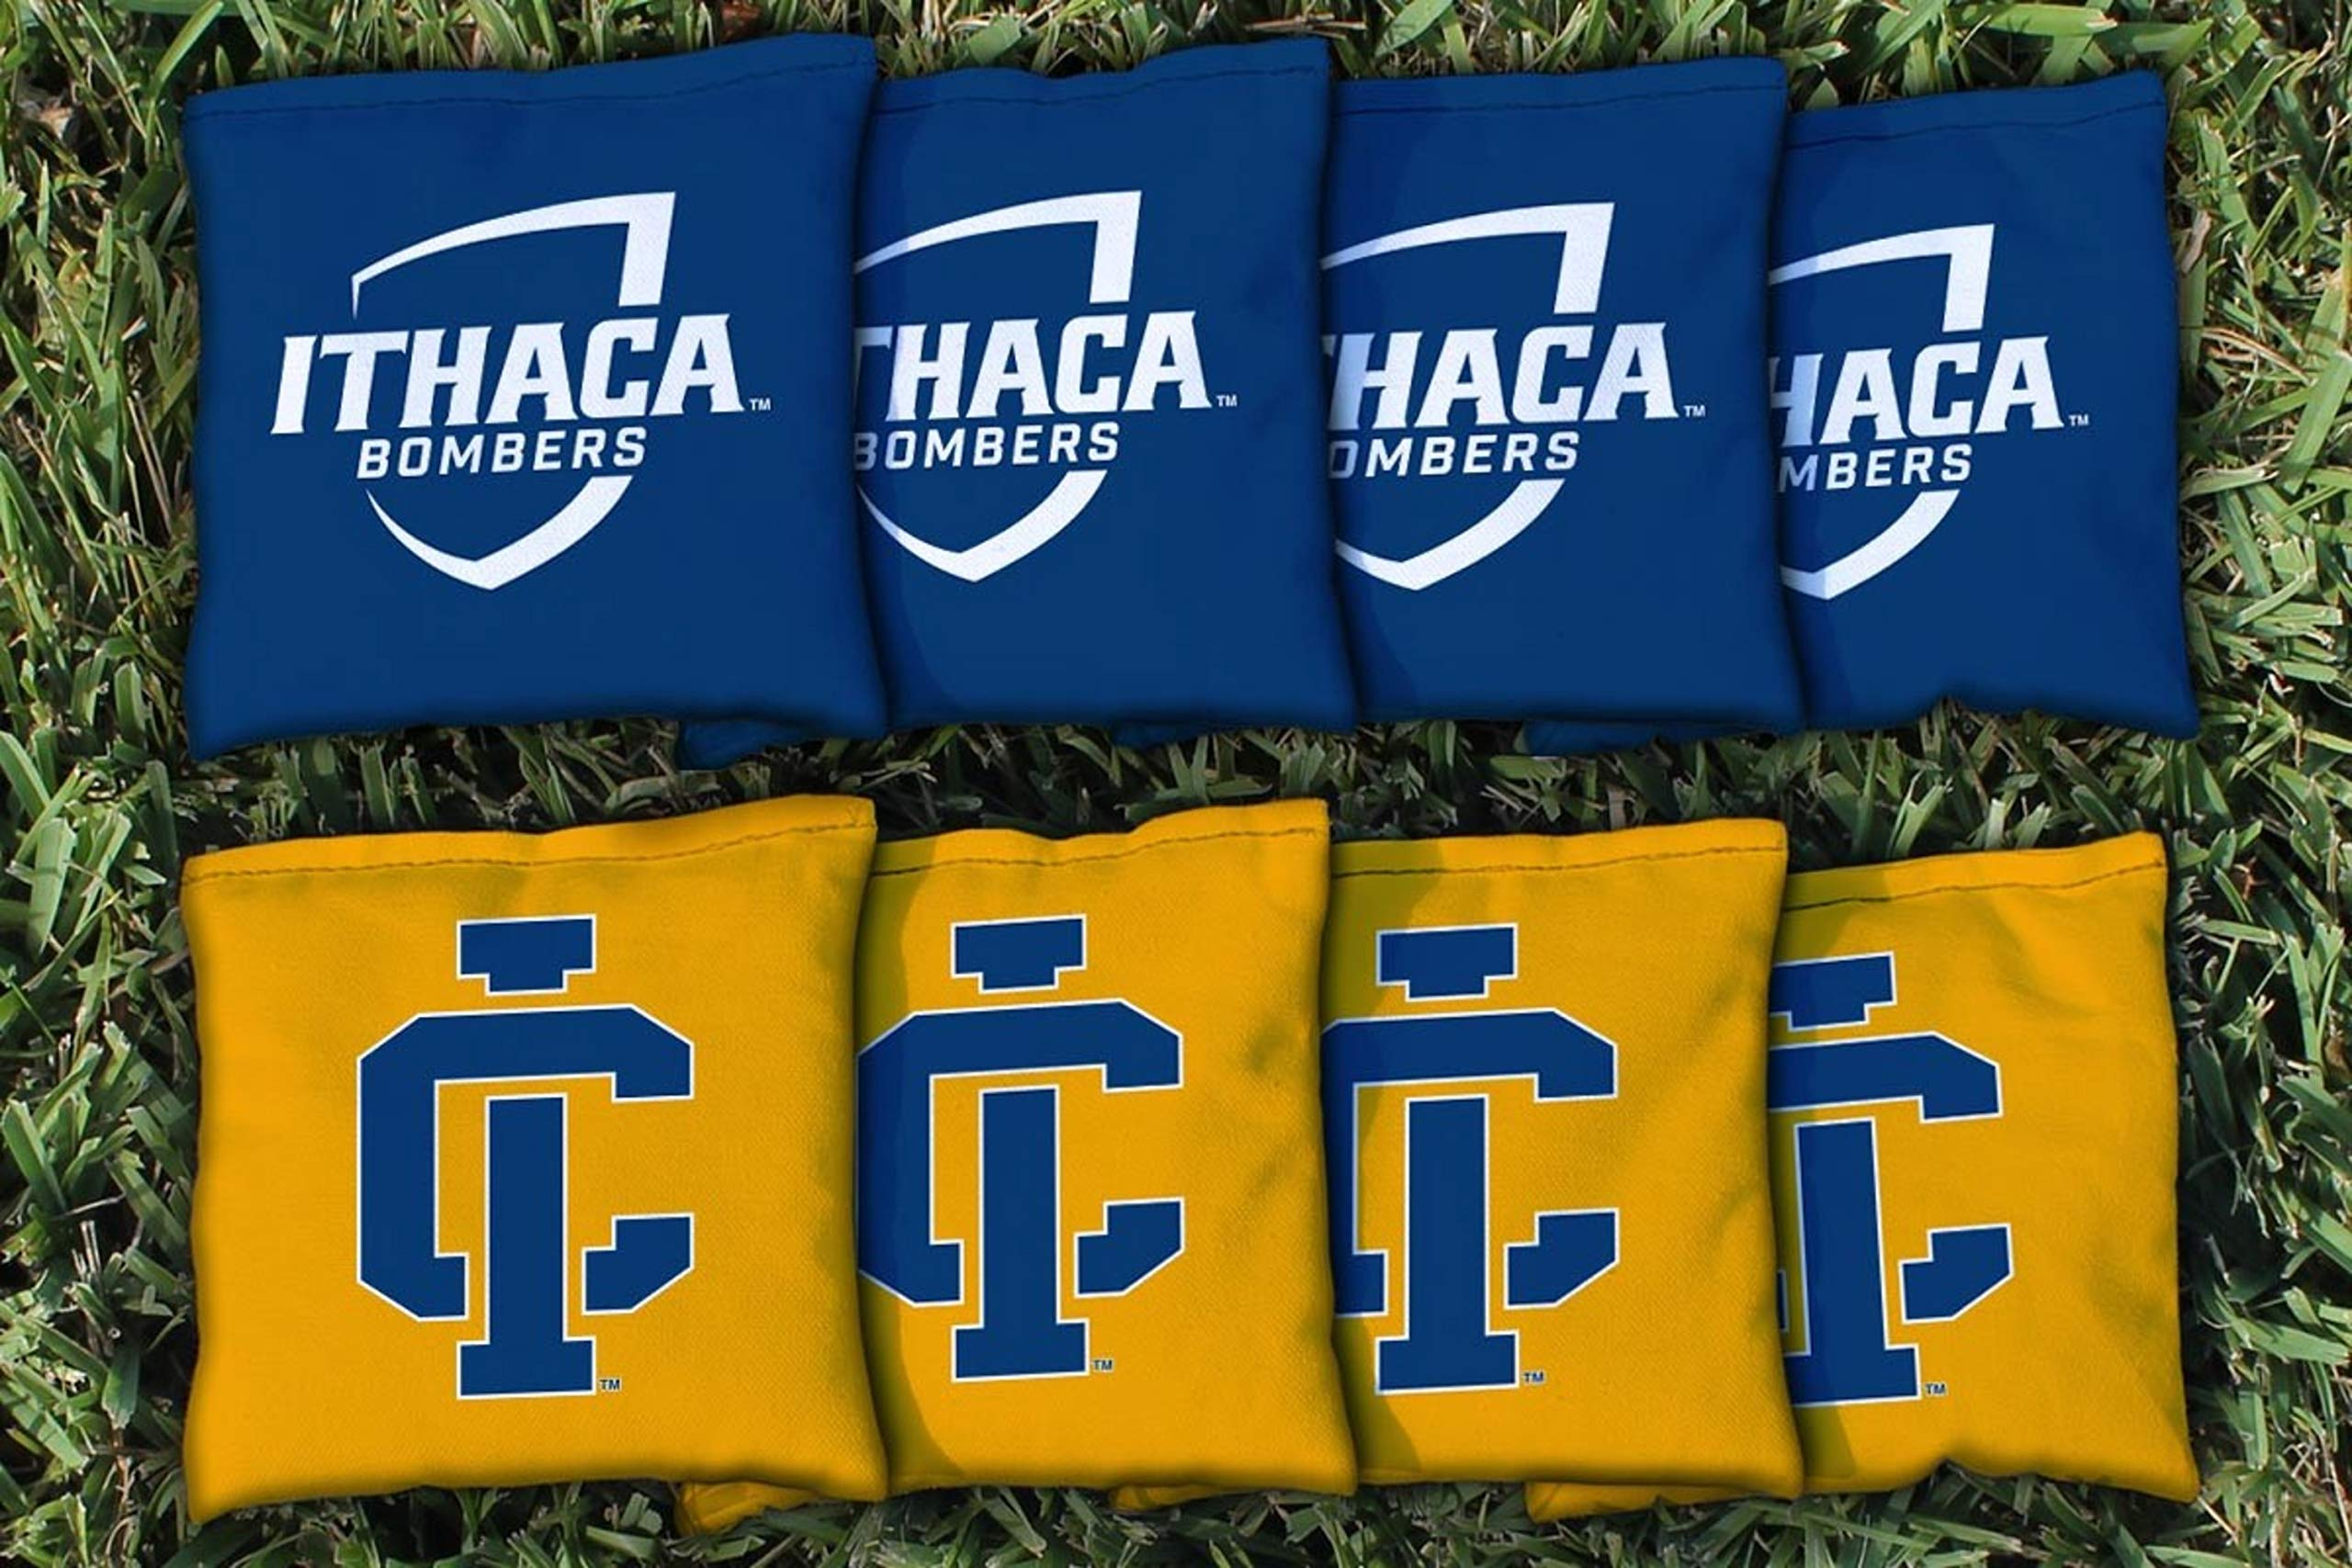 Victory Tailgate NCAA Collegiate Regulation Cornhole Game Bag Set (8 Bags Included, Corn-Filled) - Ithaca Bombers by Victory Tailgate